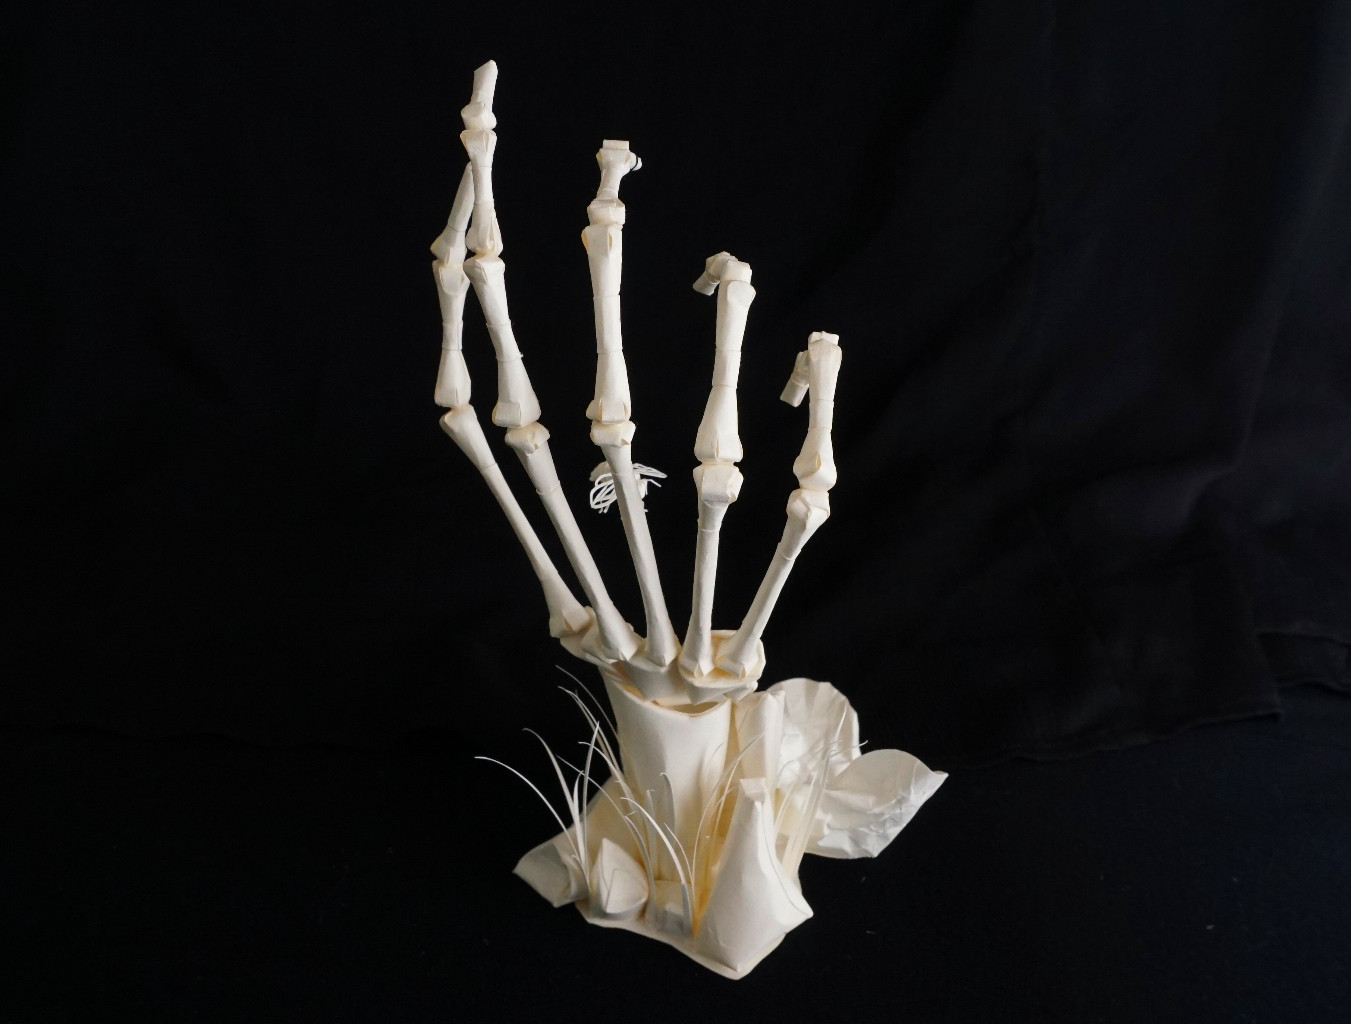 Eerily Beautiful and Macabre Paper Sculptures by Sinan Soykut - Skeleton Hand